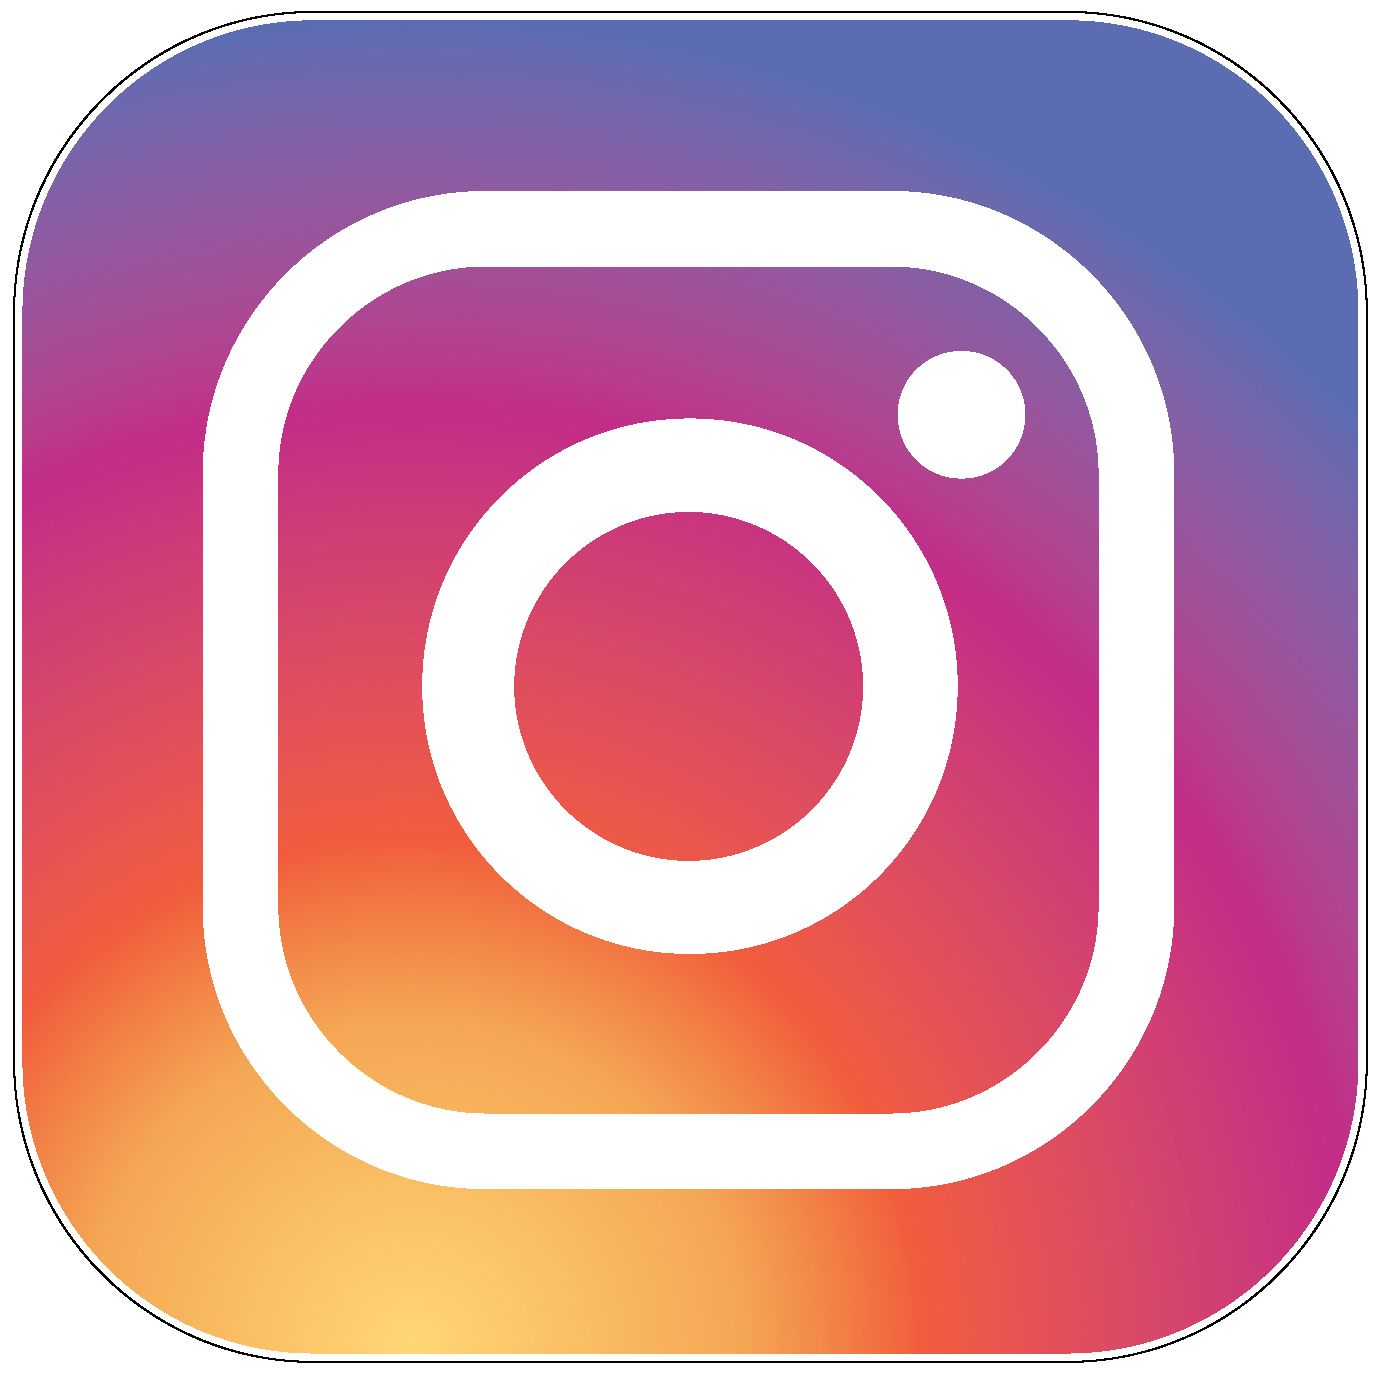 New instagram logo vinyl sticker printed vinyl decal social media vinyl stickers get your instagram vinyl decal for 2